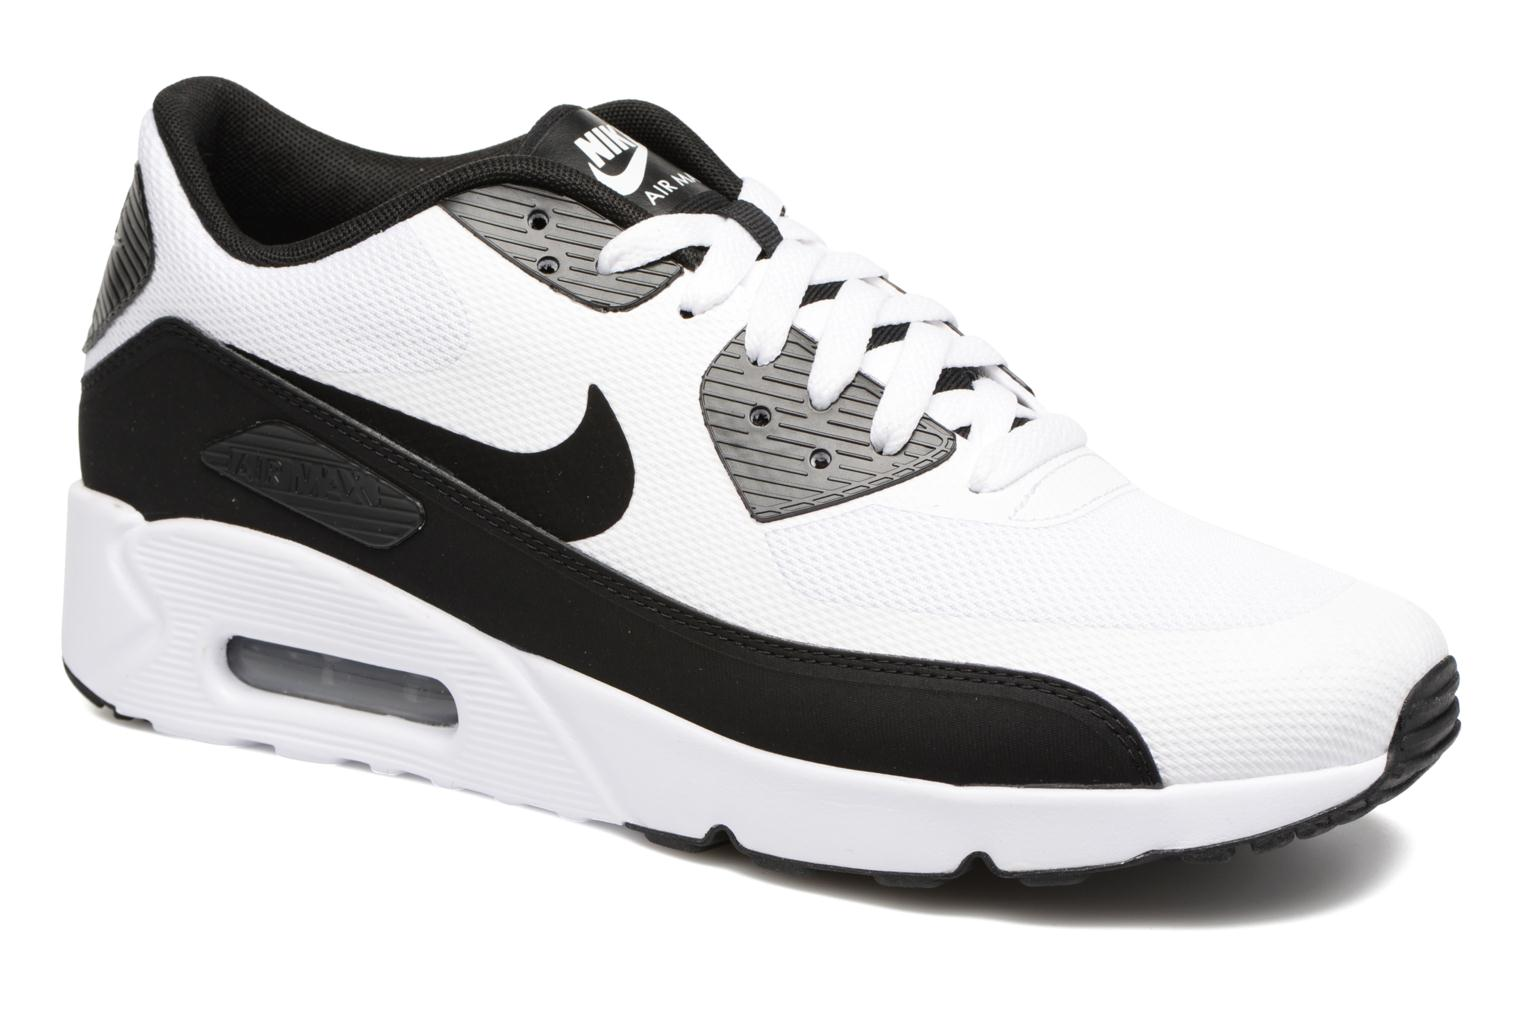 new arrival 4b961 fbd27 Nike Air Max 90 Ultra 2.0 Essential (Blanc) - Baskets chez Sarenza (280758)  GH8HUA1Z - destrainspourtous.fr